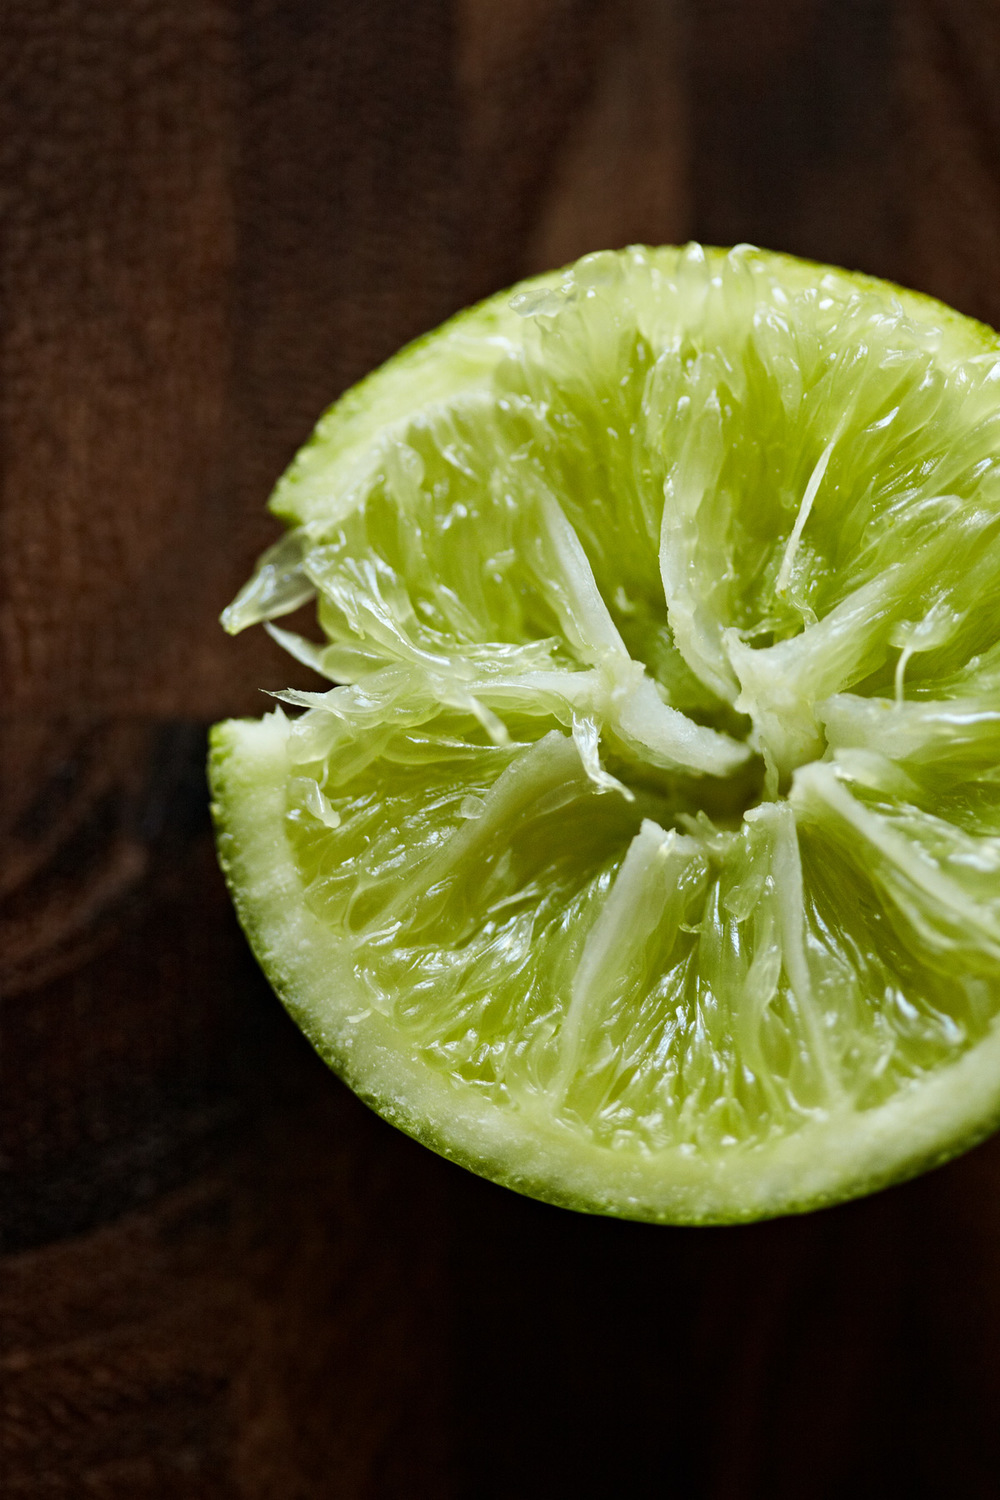 Squeezed_Lime.jpg